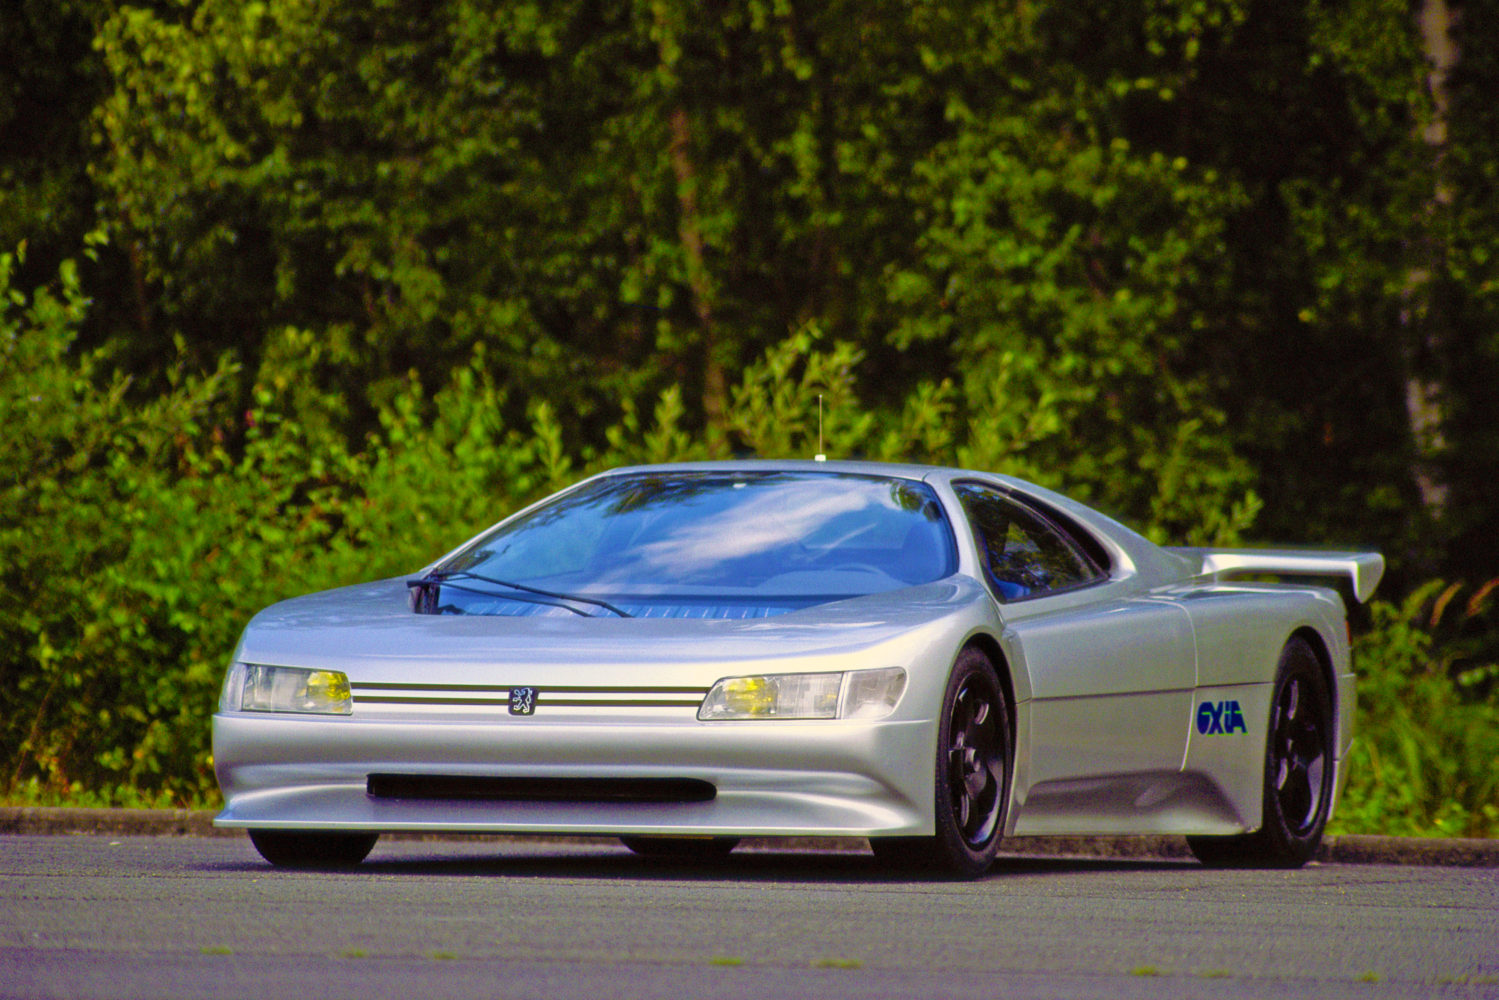 Car of the Week #15: Peugeot Oxia